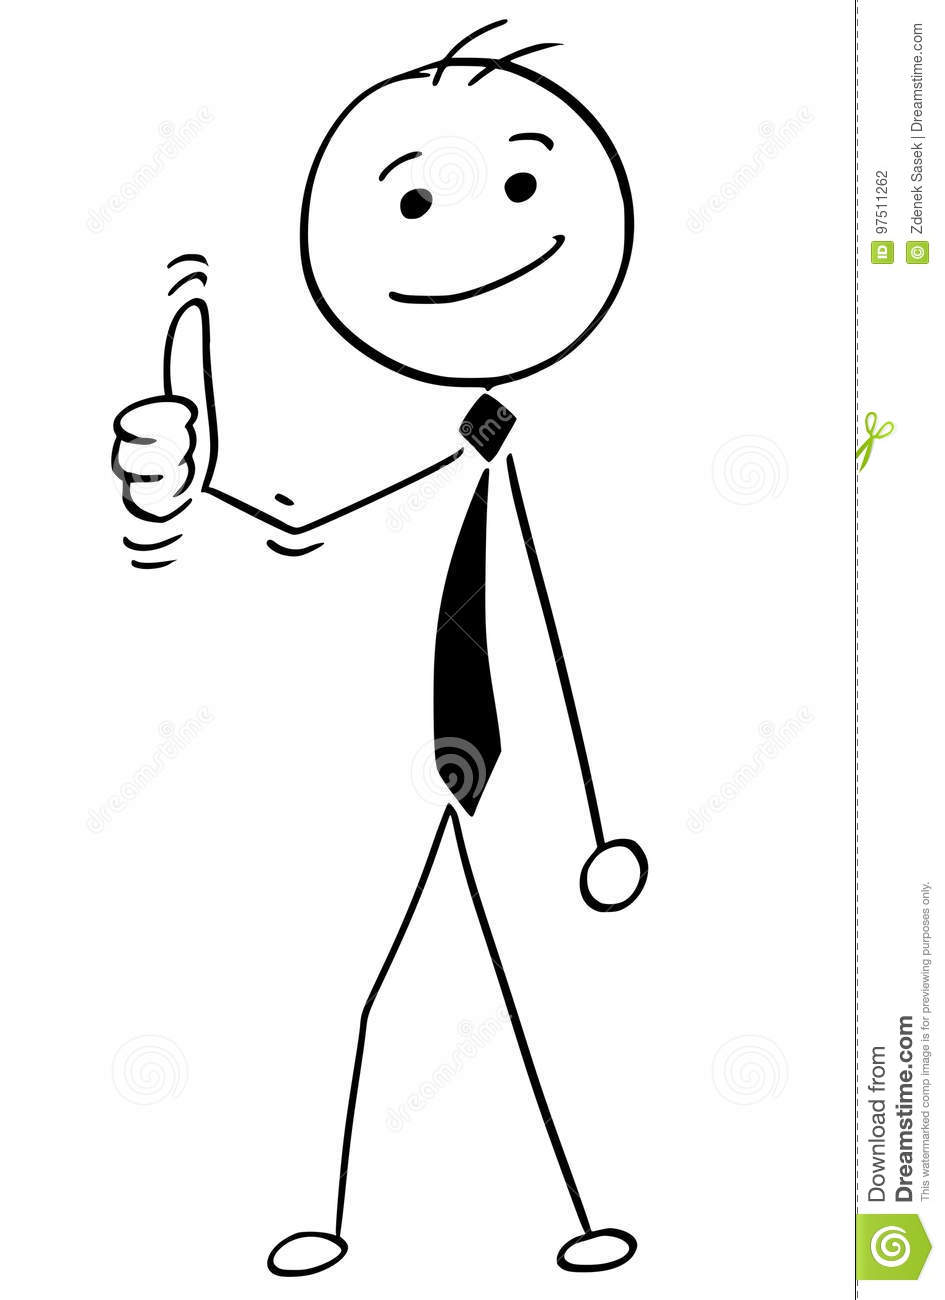 Stick figure thumbs up